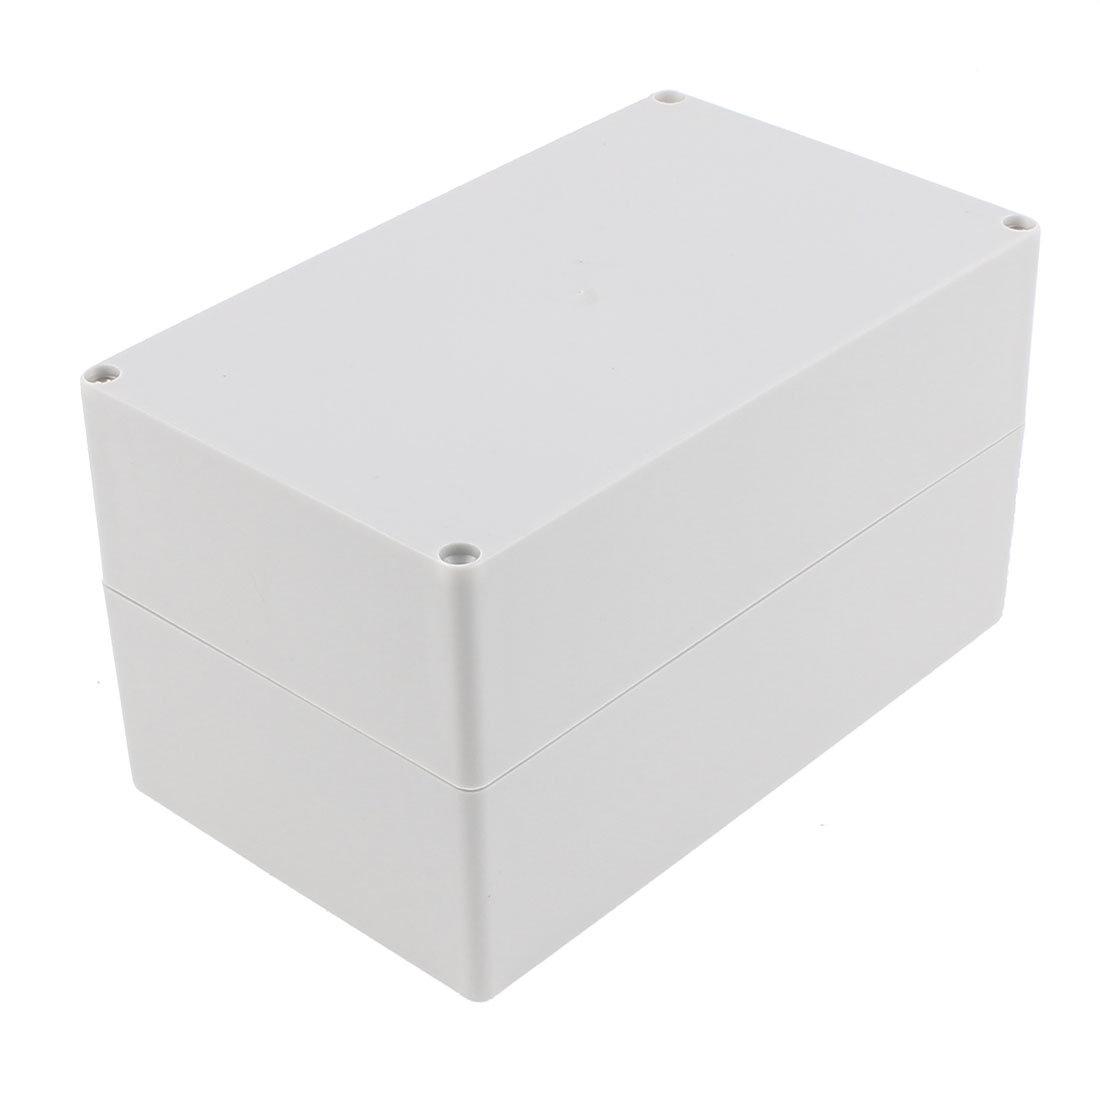 200 x 120 x 113mm Dustproof IP65 Junction Box Terminal Connecting Box Enclosure